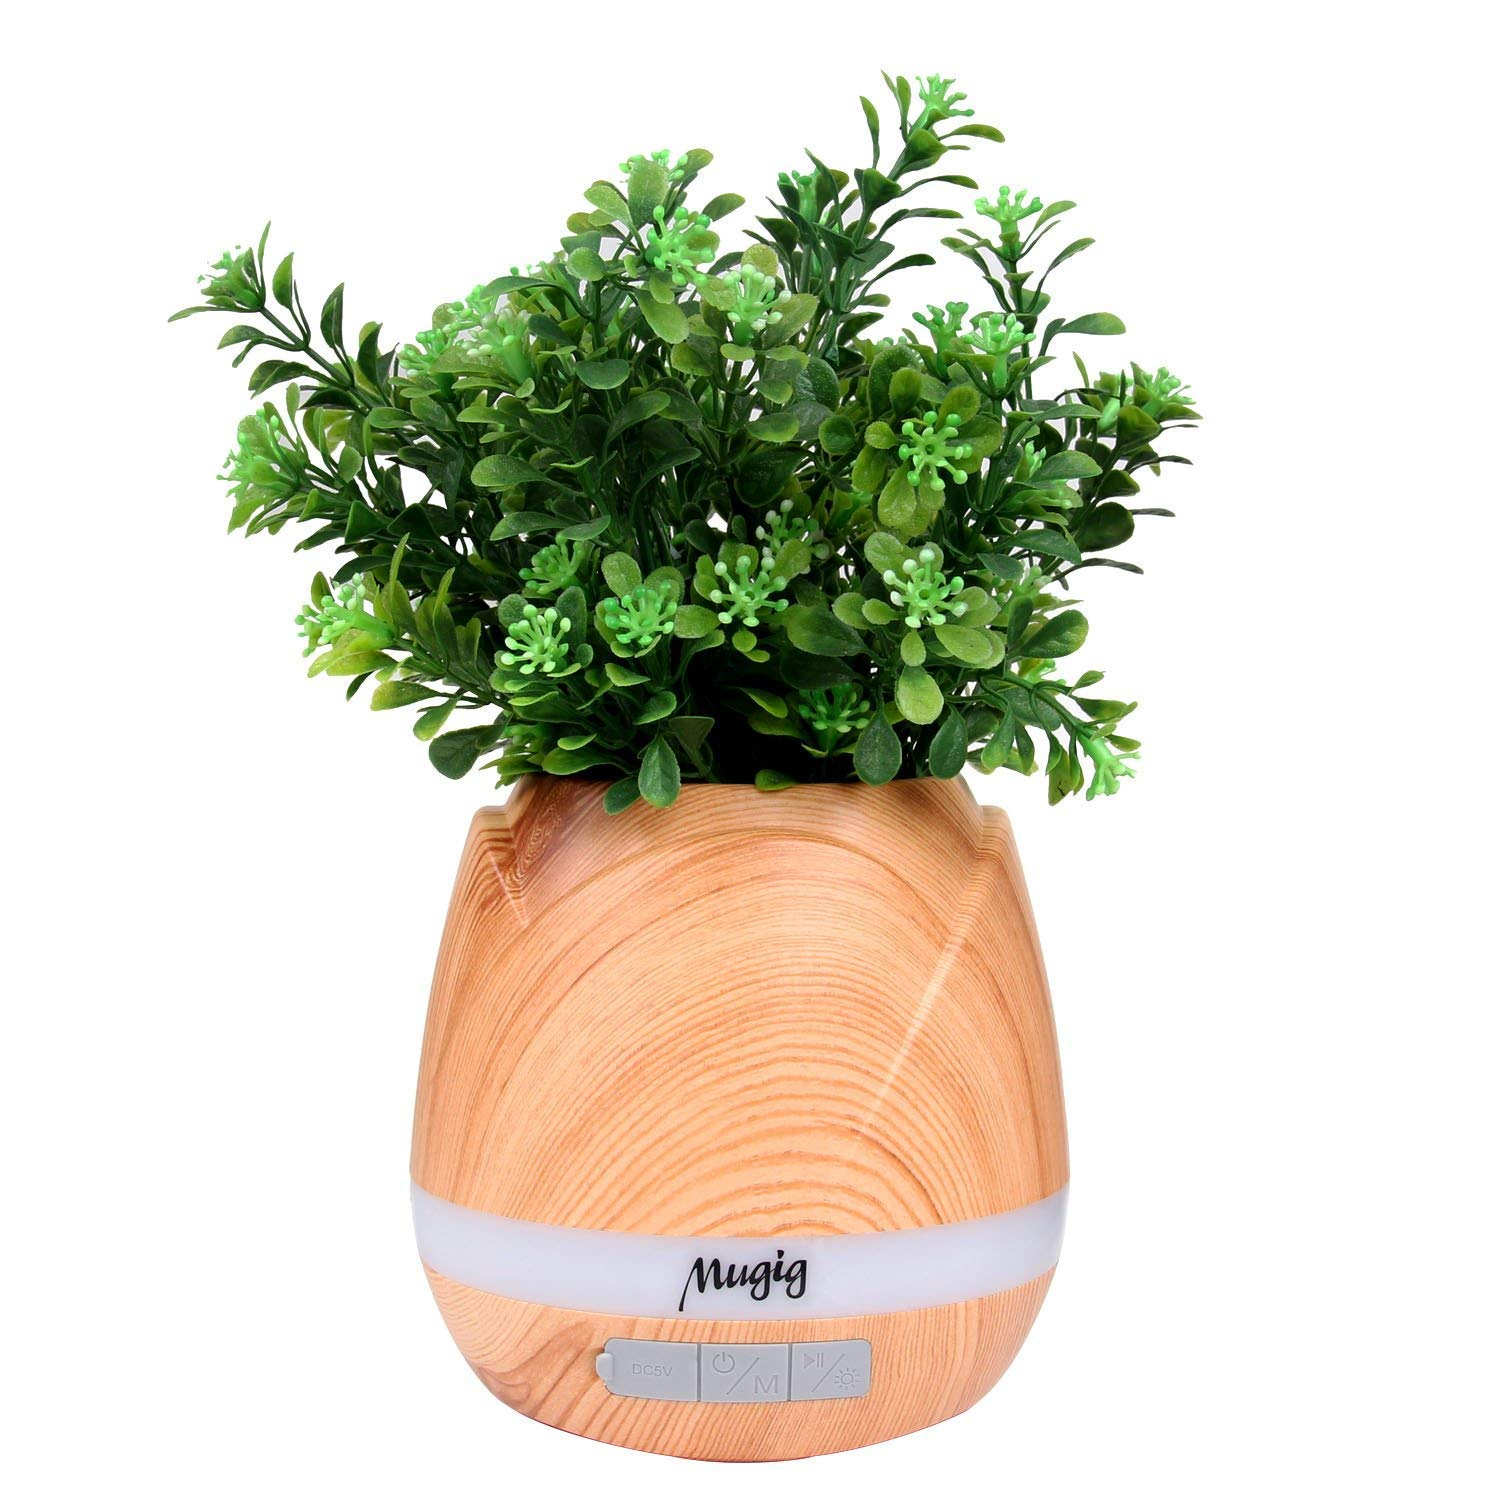 Mugig Music Flower Pot Bluetooth Speaker & Music Player with Colorful Night Lights, Touching Plants for Music